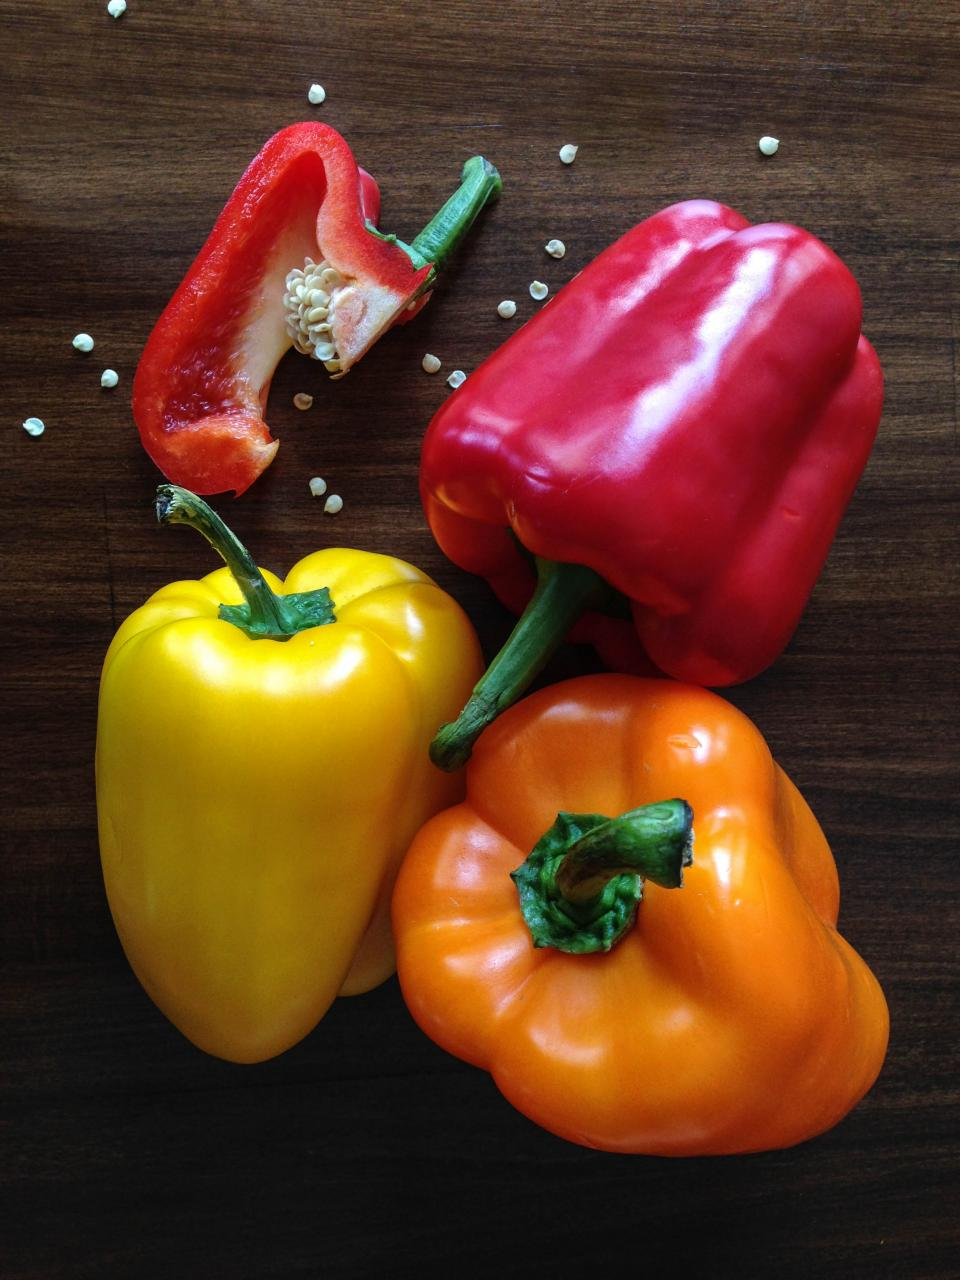 peppers vegetables red yellow orange seeds wood